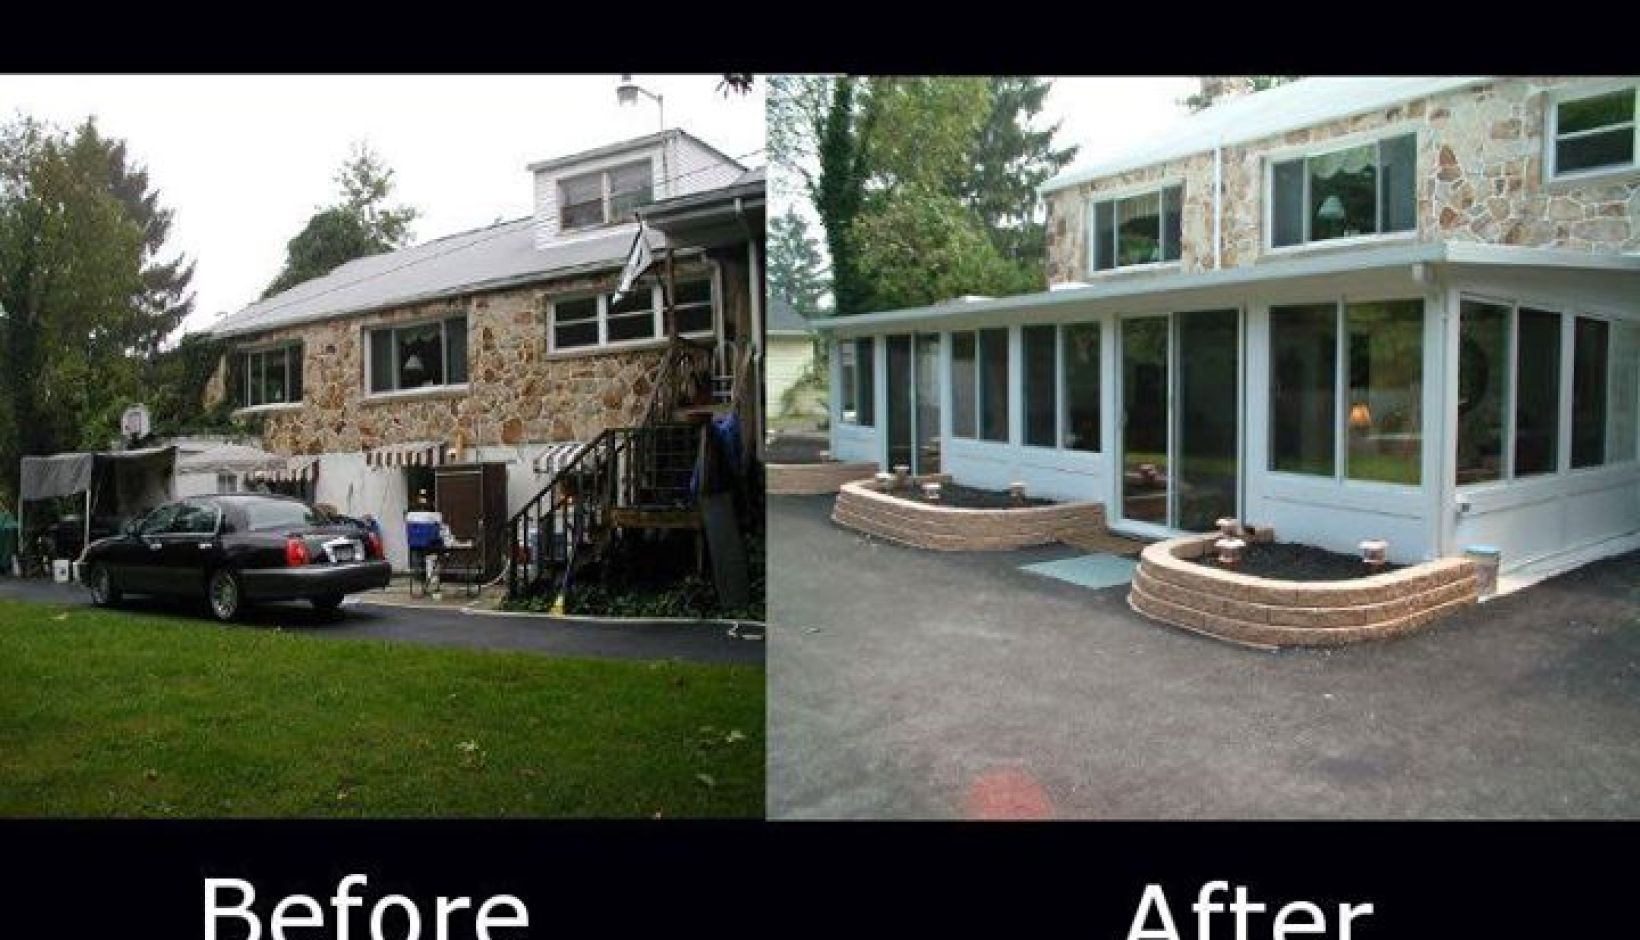 PICS OF SUNROOMS BEFORE AND AFTER BY BETTERLIVING SUNROOMS OF PITTSBURGH